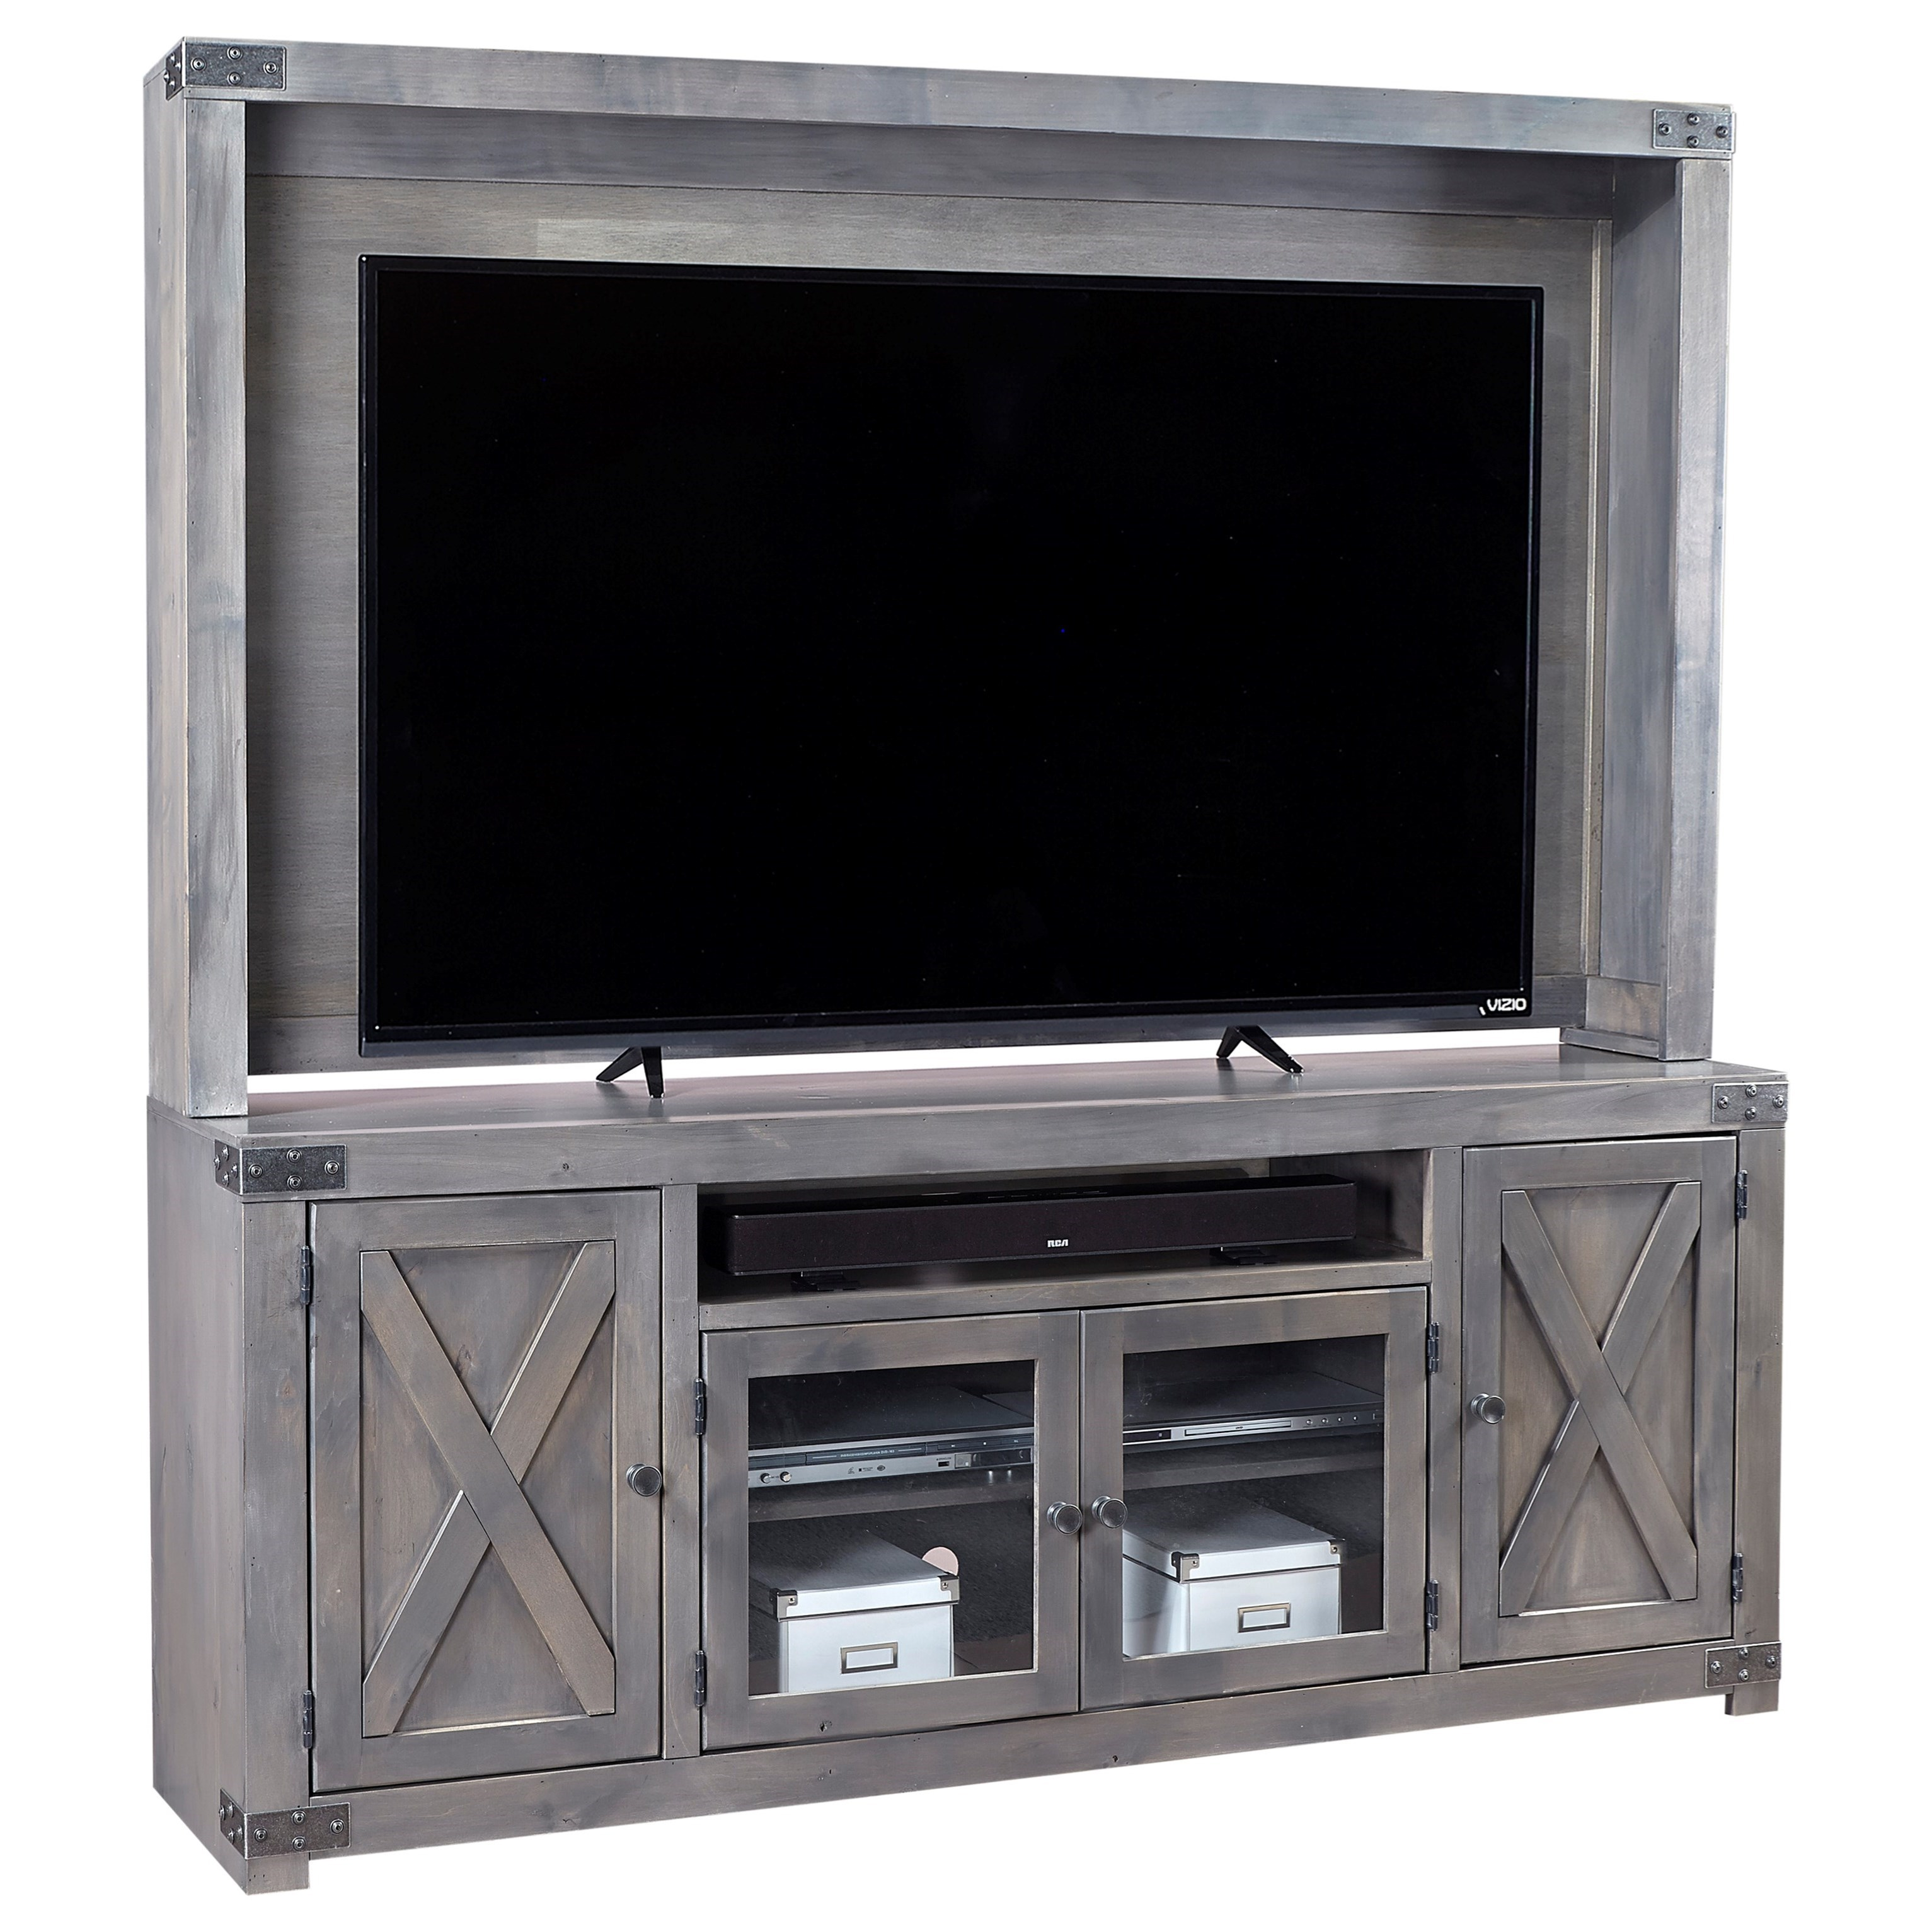 Urban Farmhouse Wall Unit by Aspenhome at Walker's Furniture